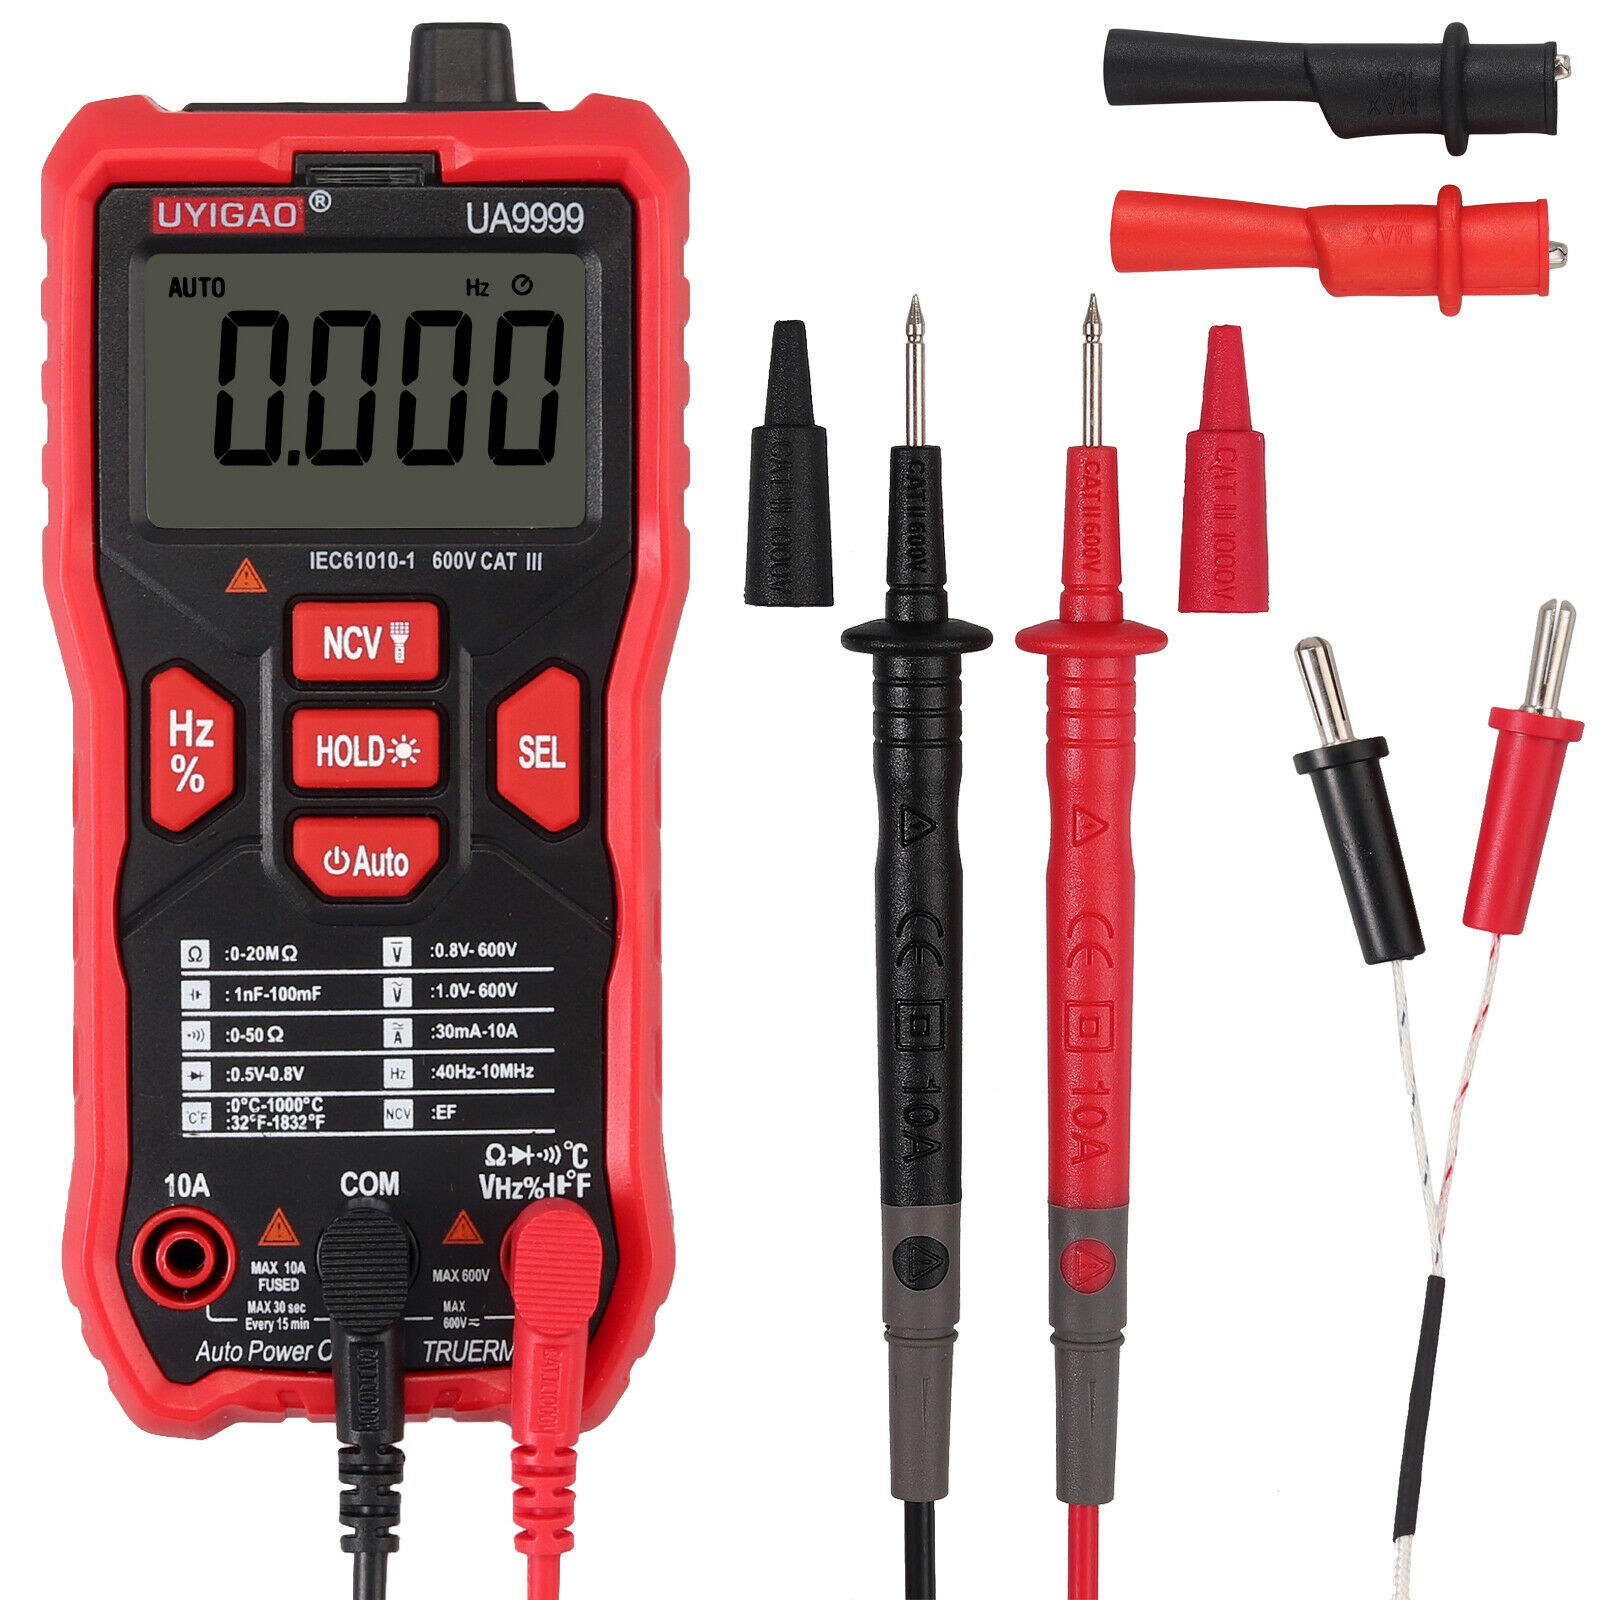 Electric Non Contact Voltage Tester Pen Ac Volt Alert Detector Details About 90v To 1000v Electrical Live Circuit Sensor 12 1 Of 12free Shipping See More